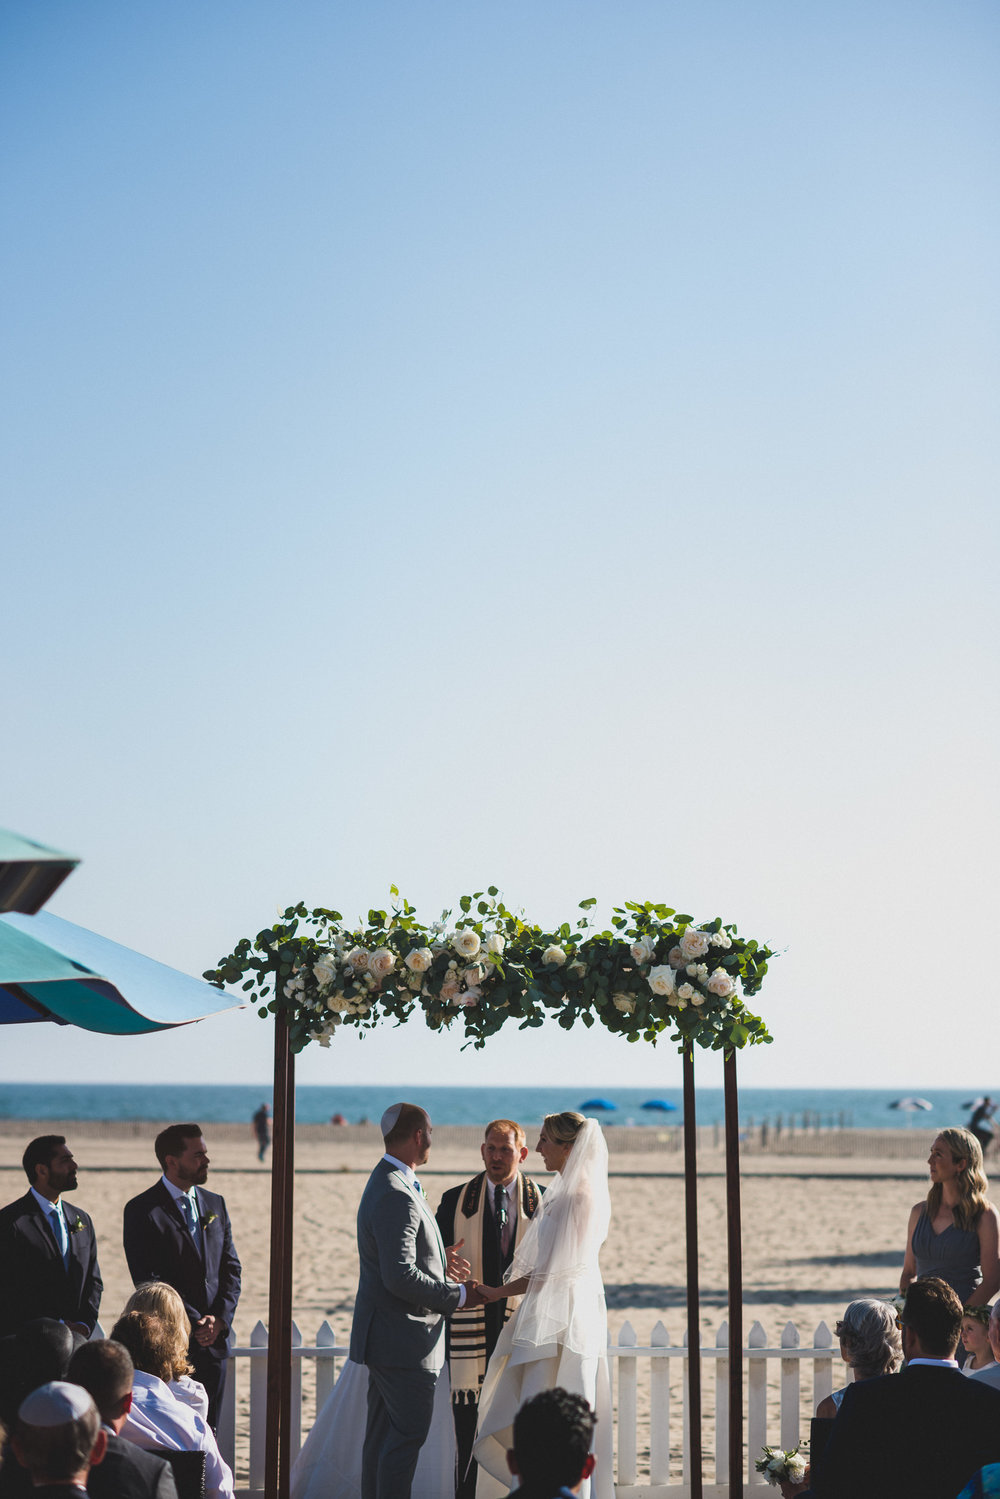 sA+B - The Beach Club - Santa Monica CA - 05 Ceremony-44.jpg